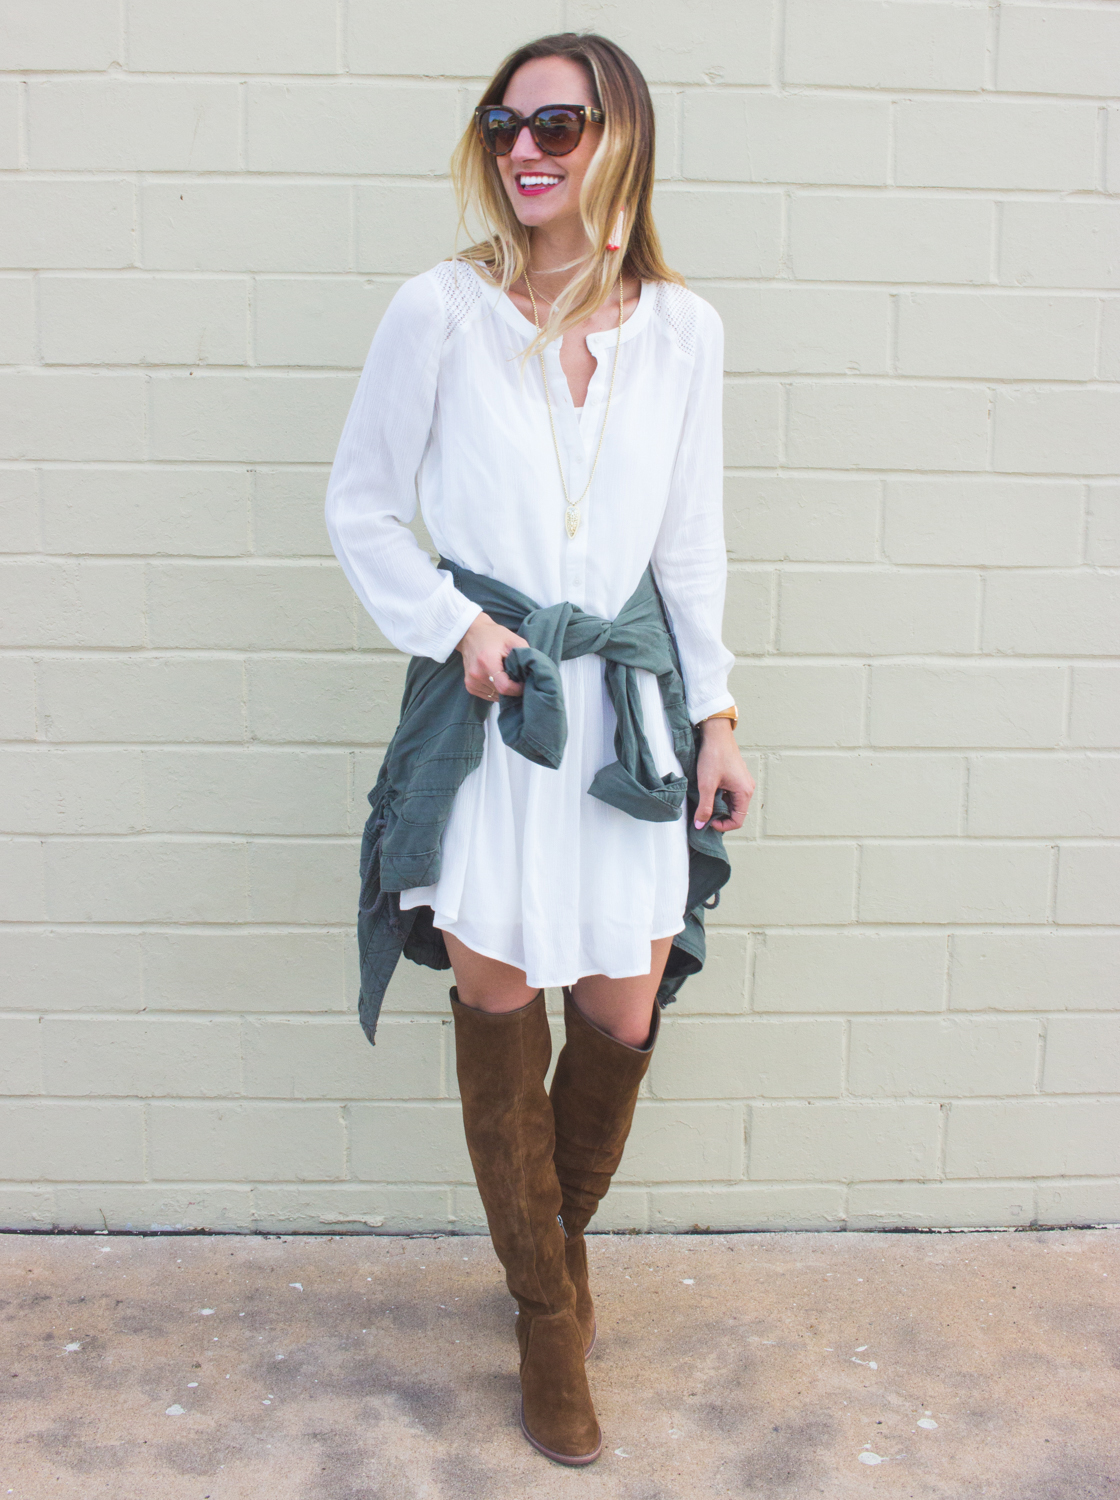 livvyland-blog-olivia-watson-fall-outfit-inspiration-drop-waist-white-dress-otk-boots-7